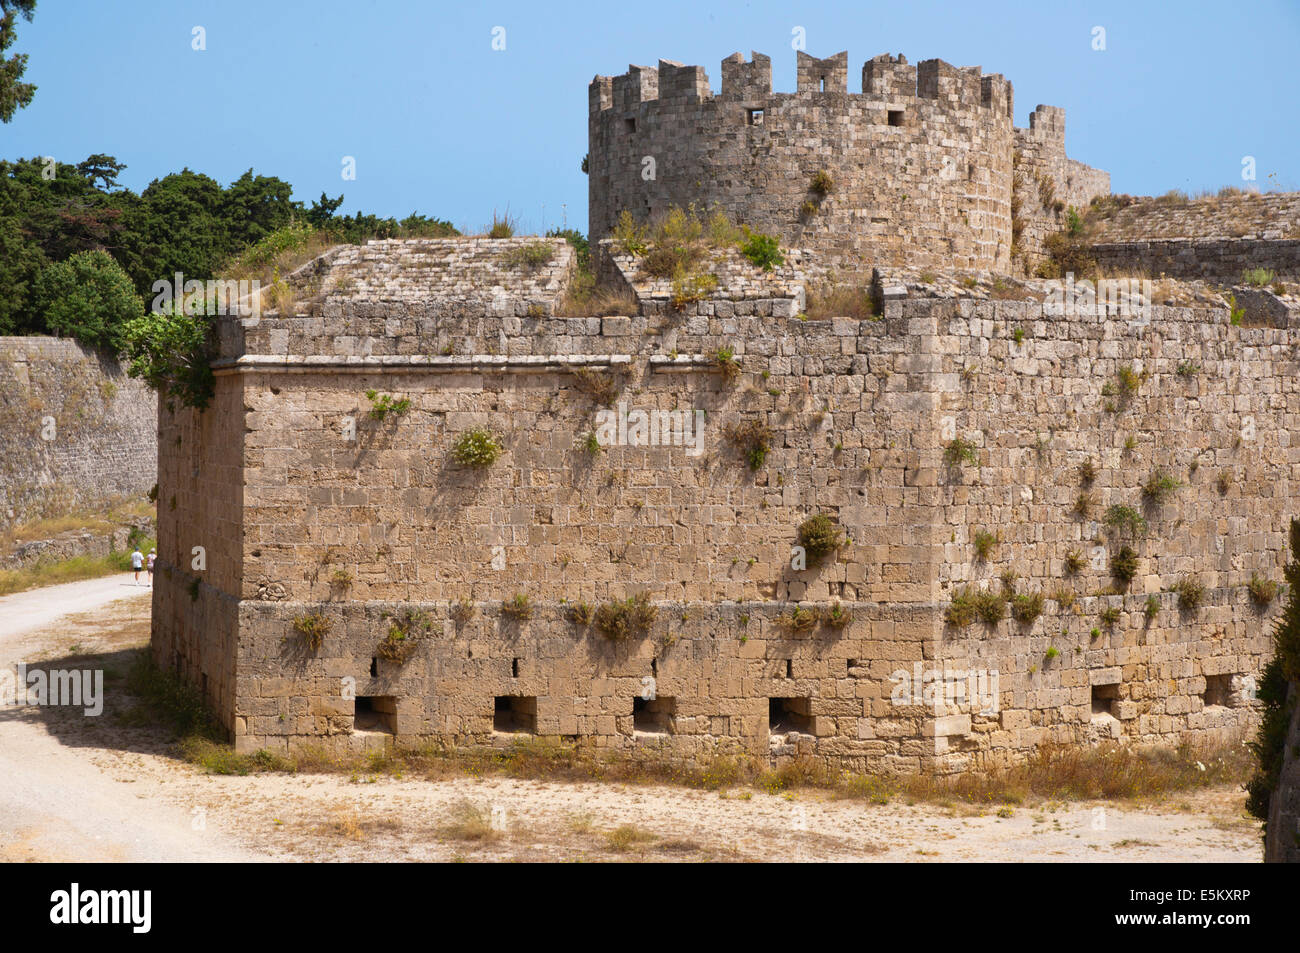 Defensive walls and moat outside old town, Rhodes town, Rhodes island, Dodecanese islands, Greece, Europe - Stock Image